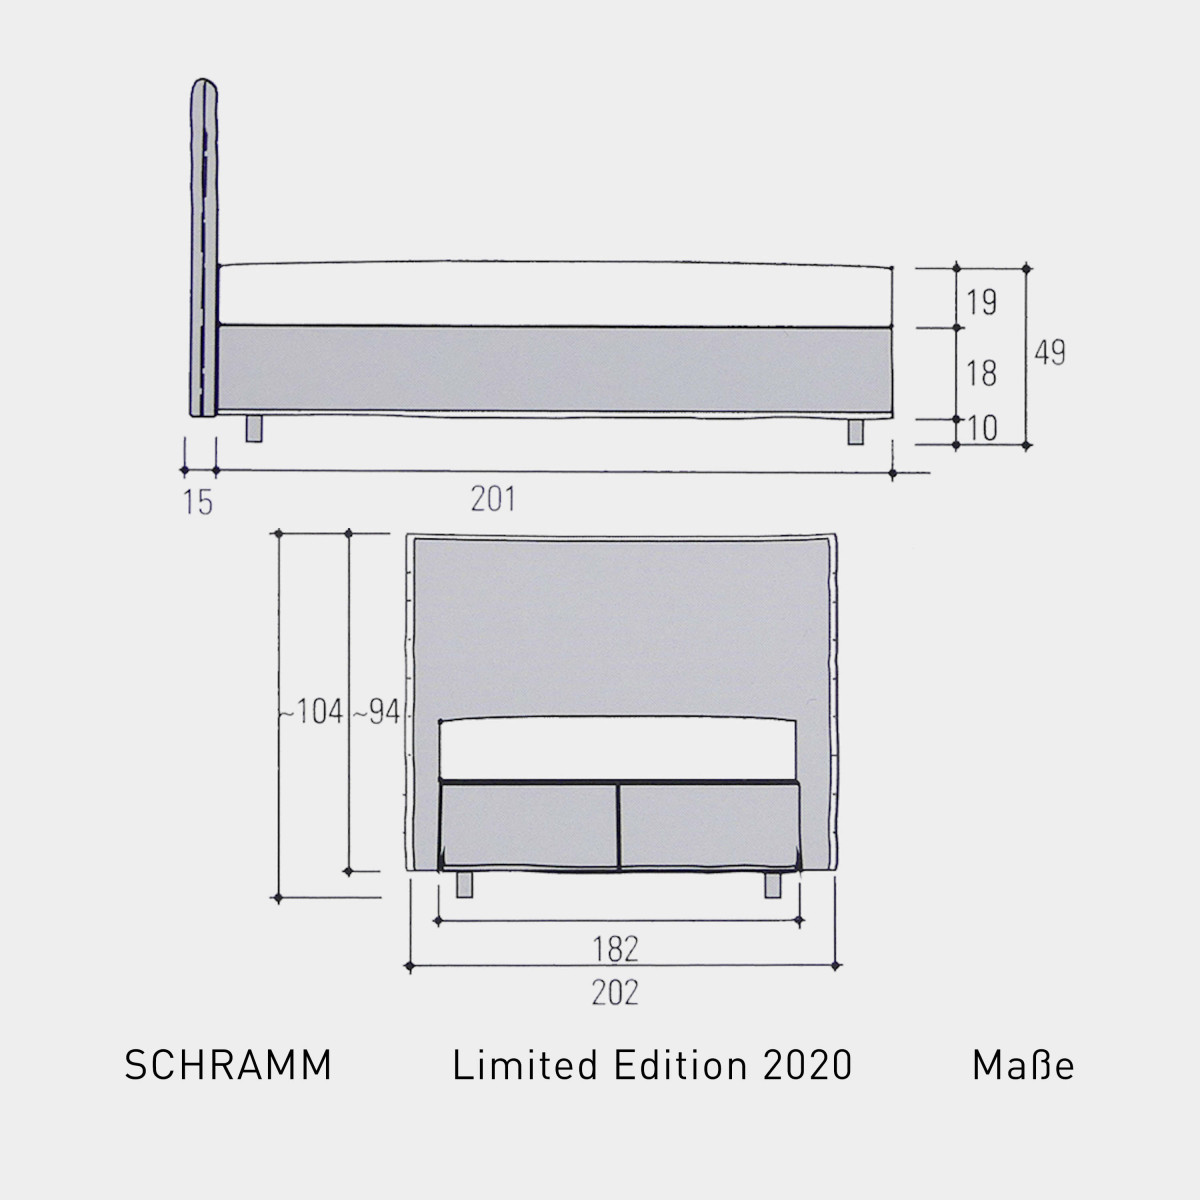 Schramm Limited Edition 2020 - Maße